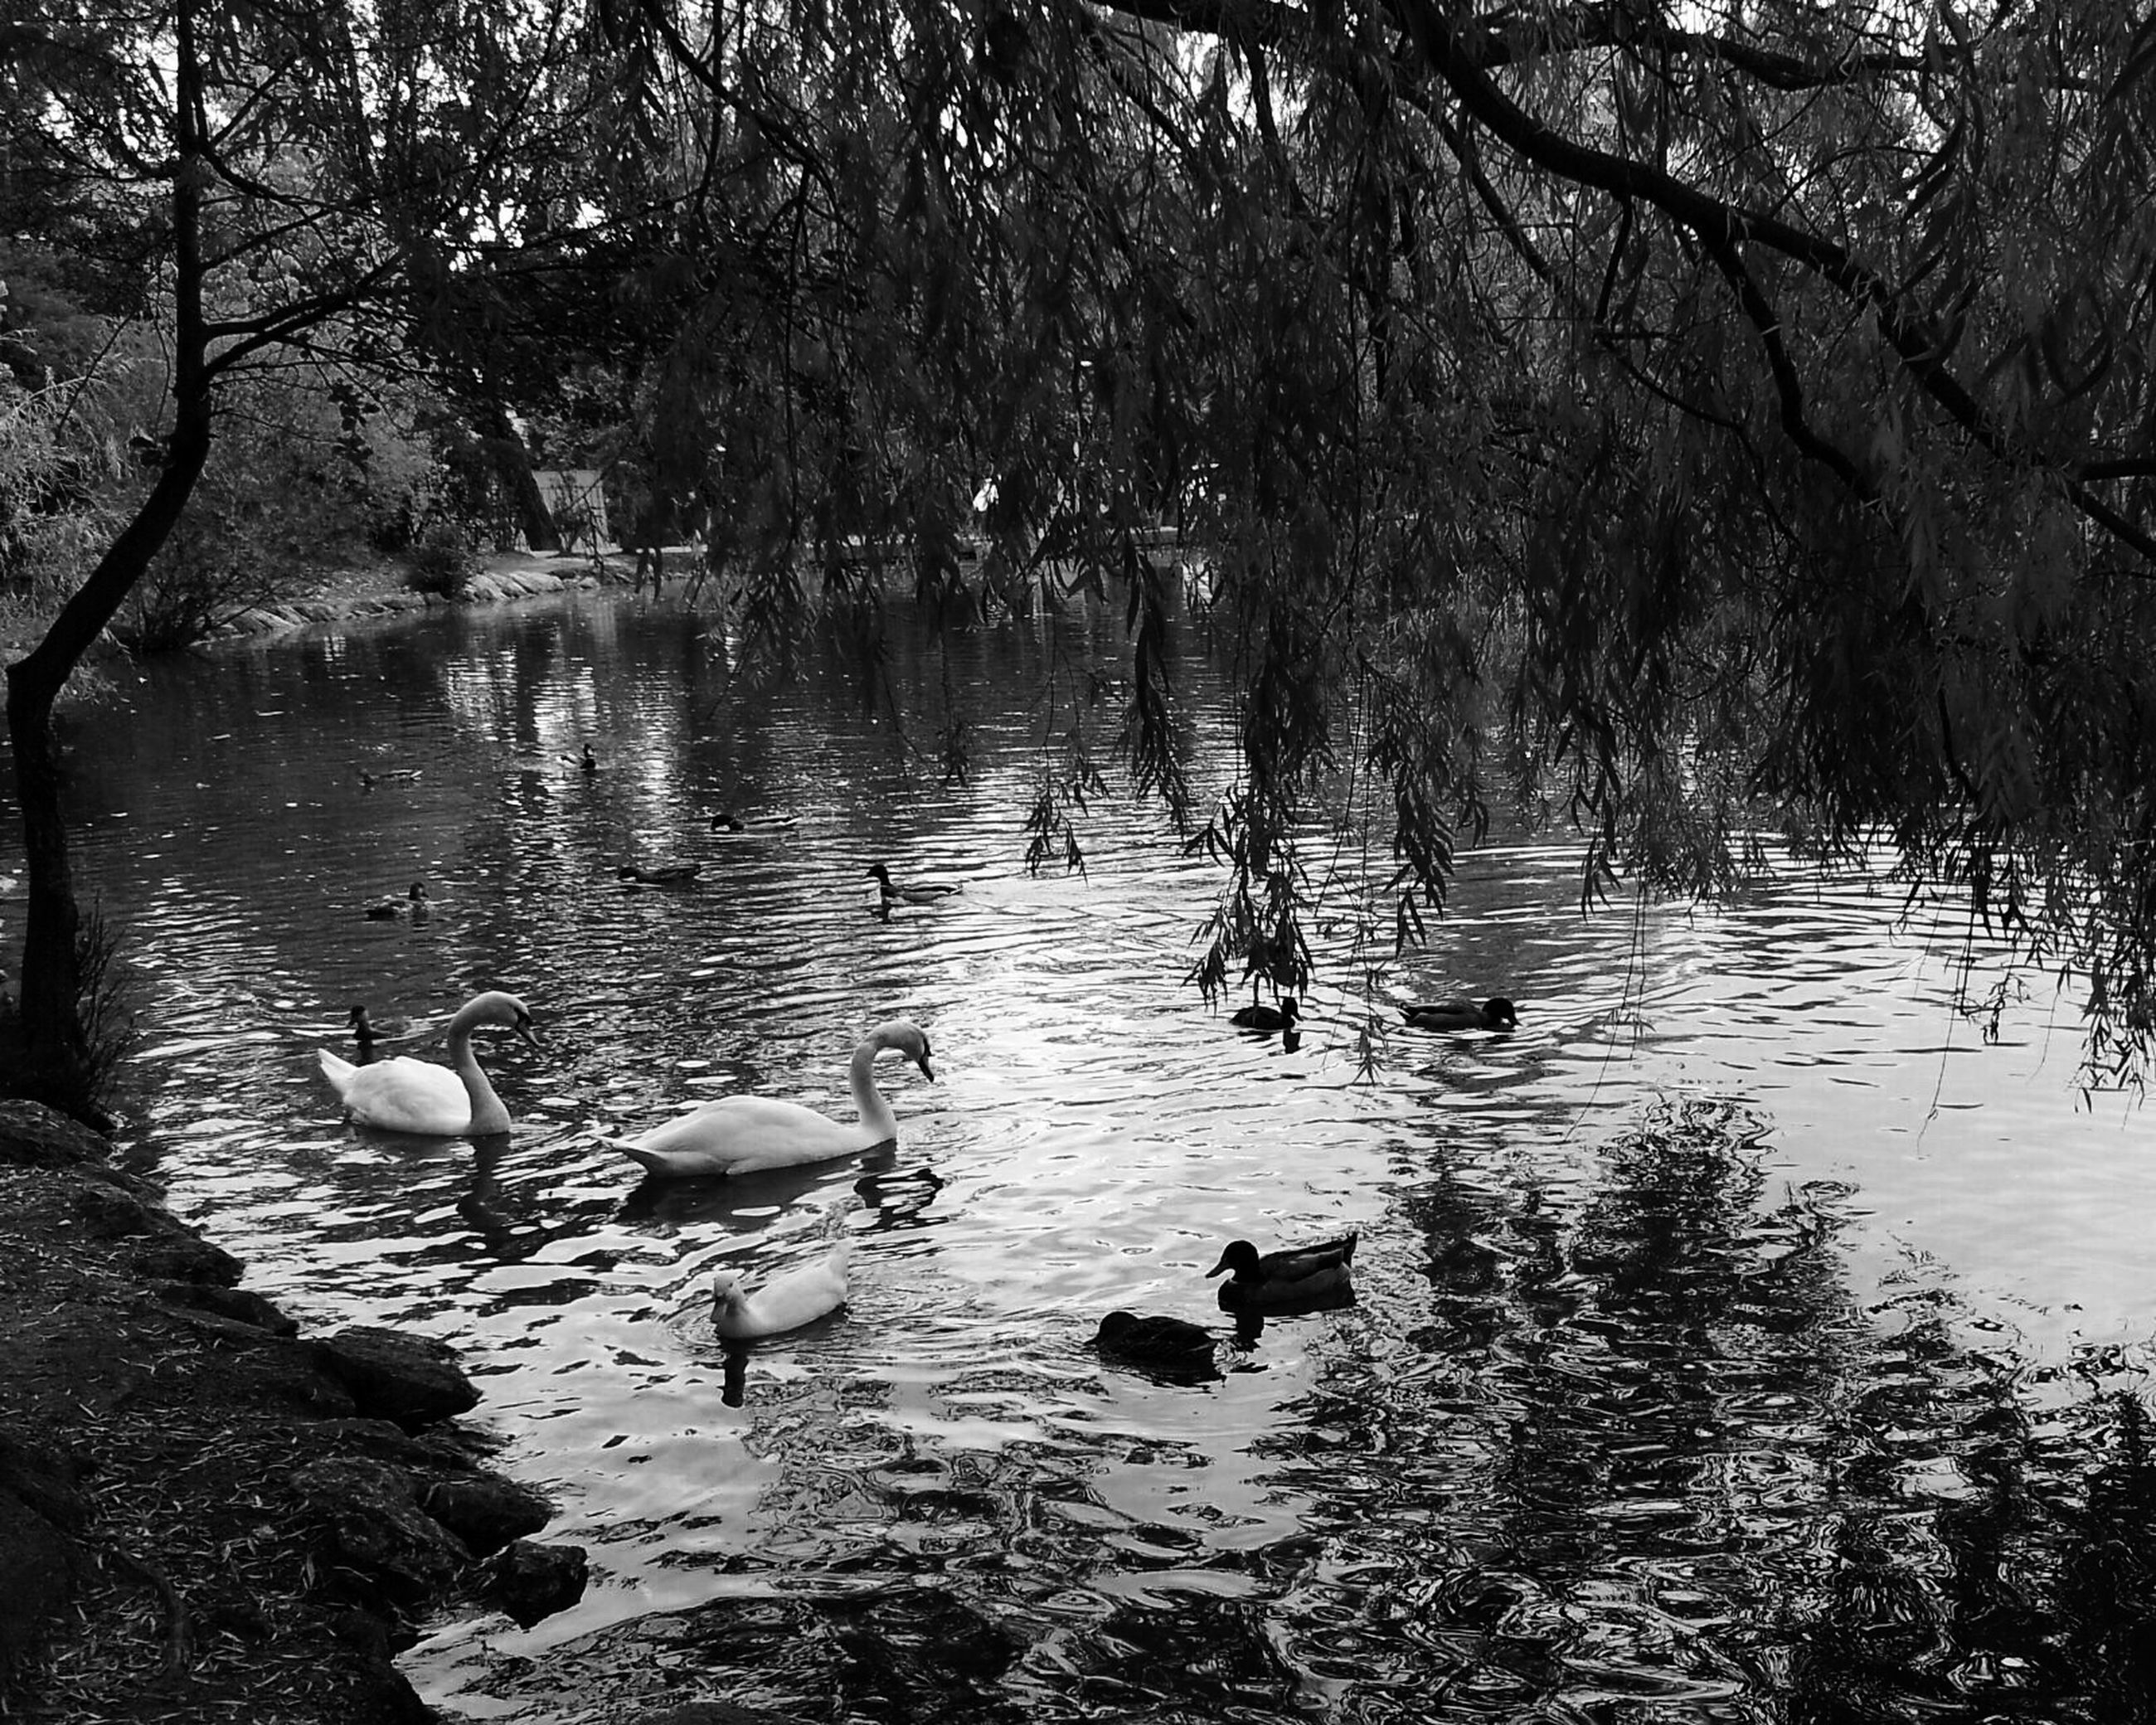 water, nature, lake, bird, reflection, no people, animal themes, tree, animals in the wild, outdoors, floating on water, swimming, beauty in nature, day, swan